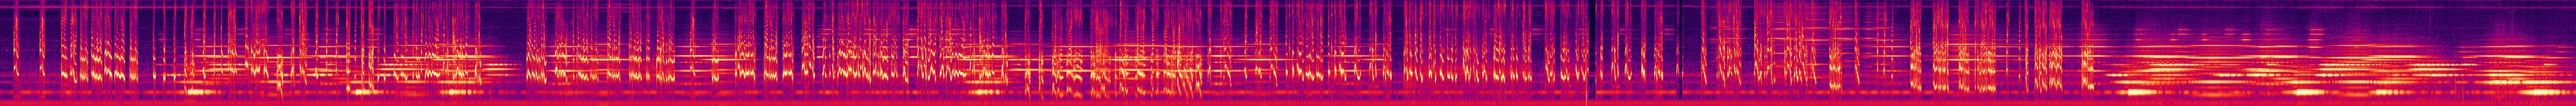 The Dreams - 5. Colour - Spectrogram.jpg